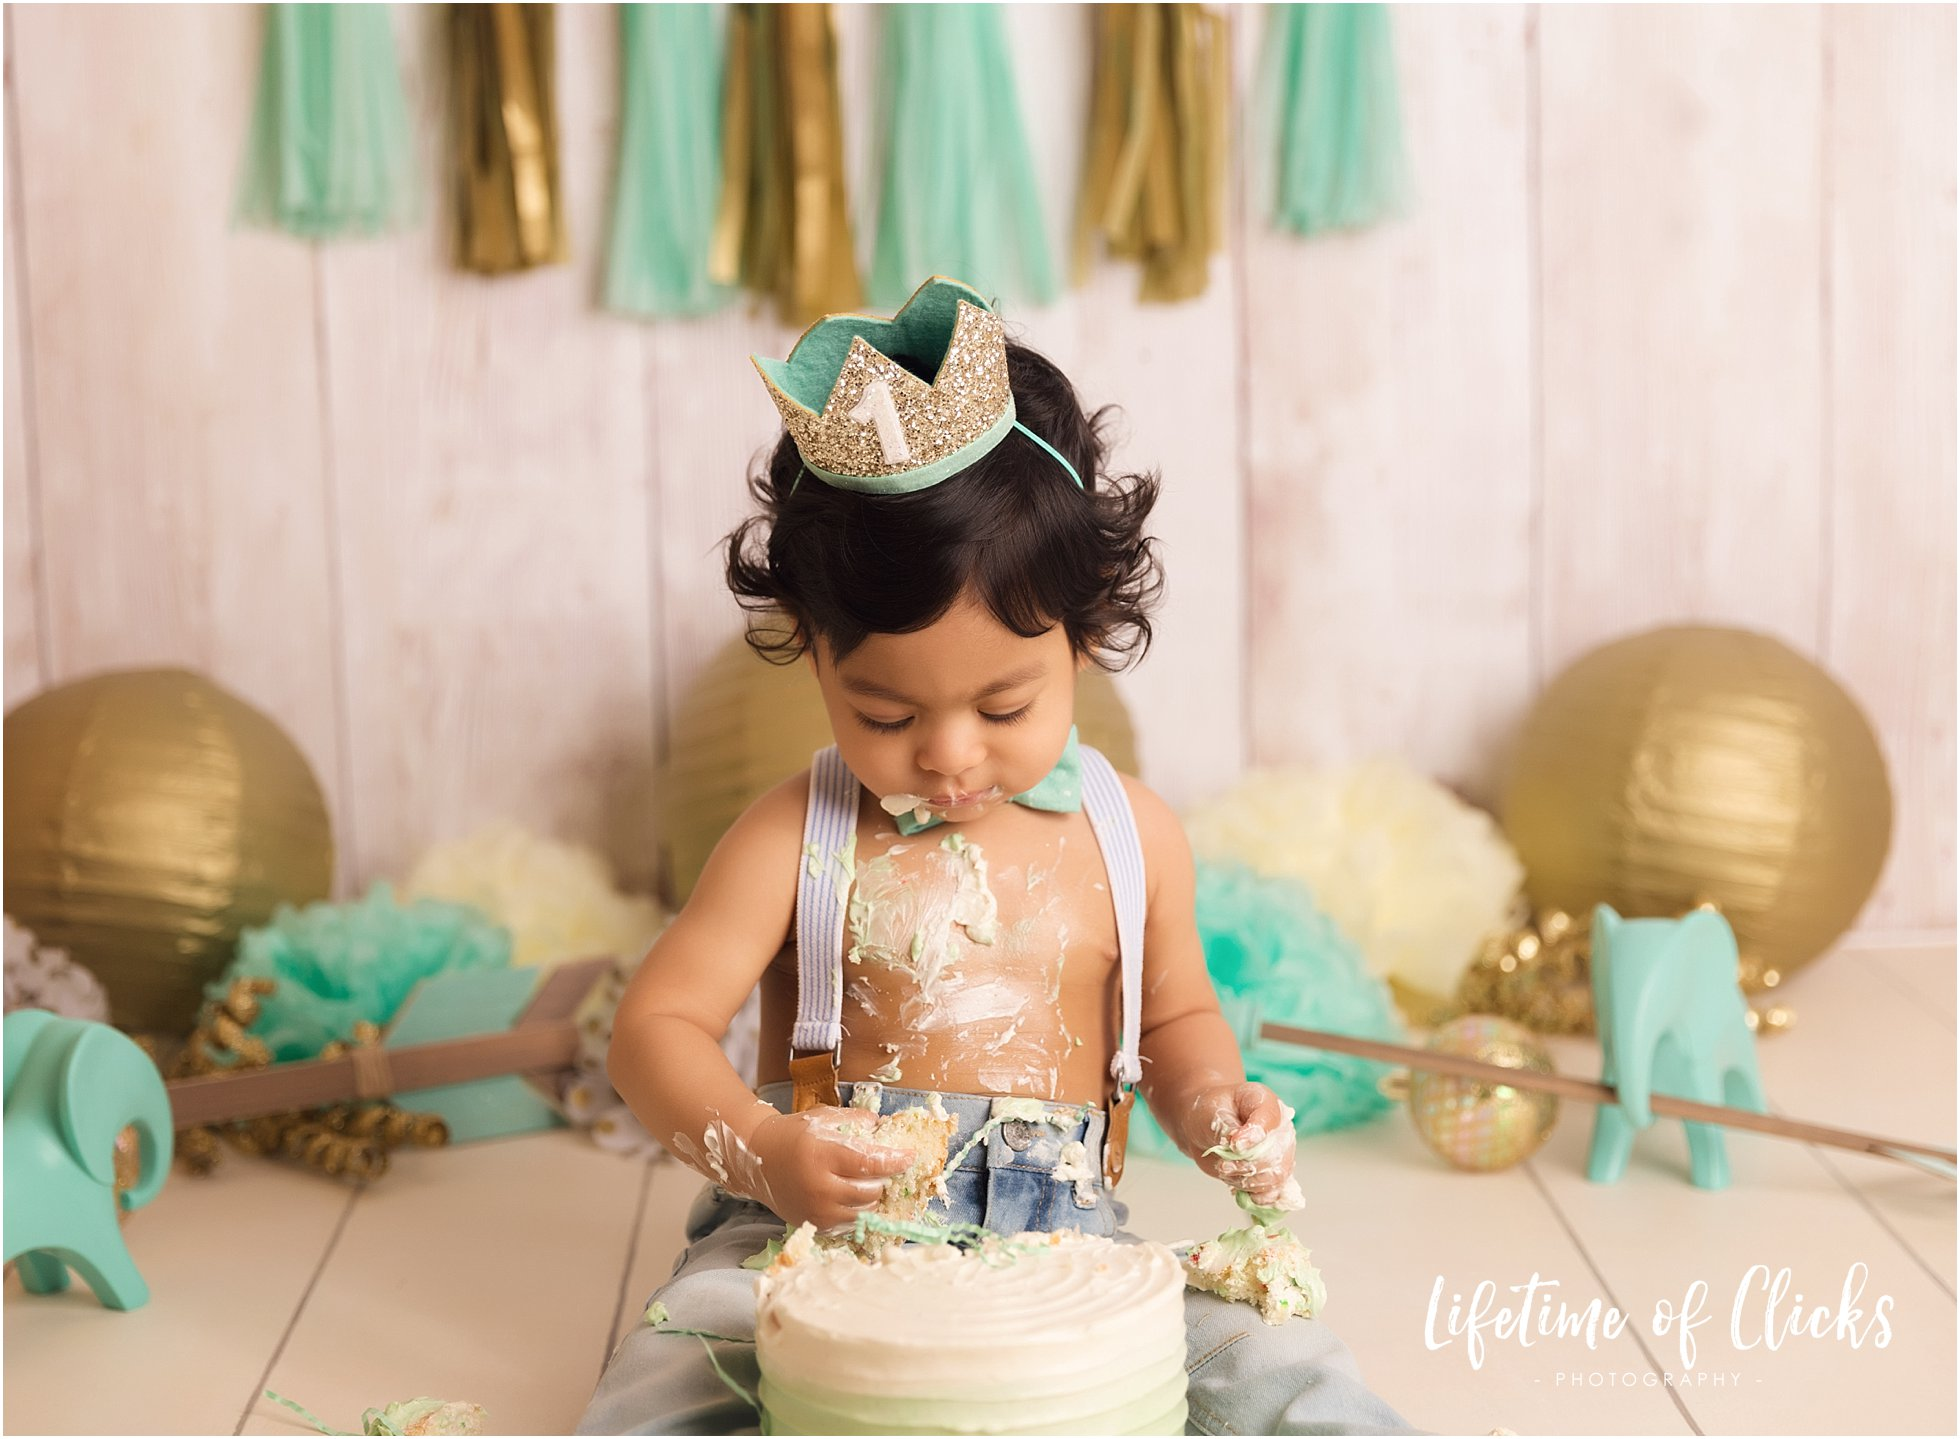 One year old boy smashes his first birthday cake